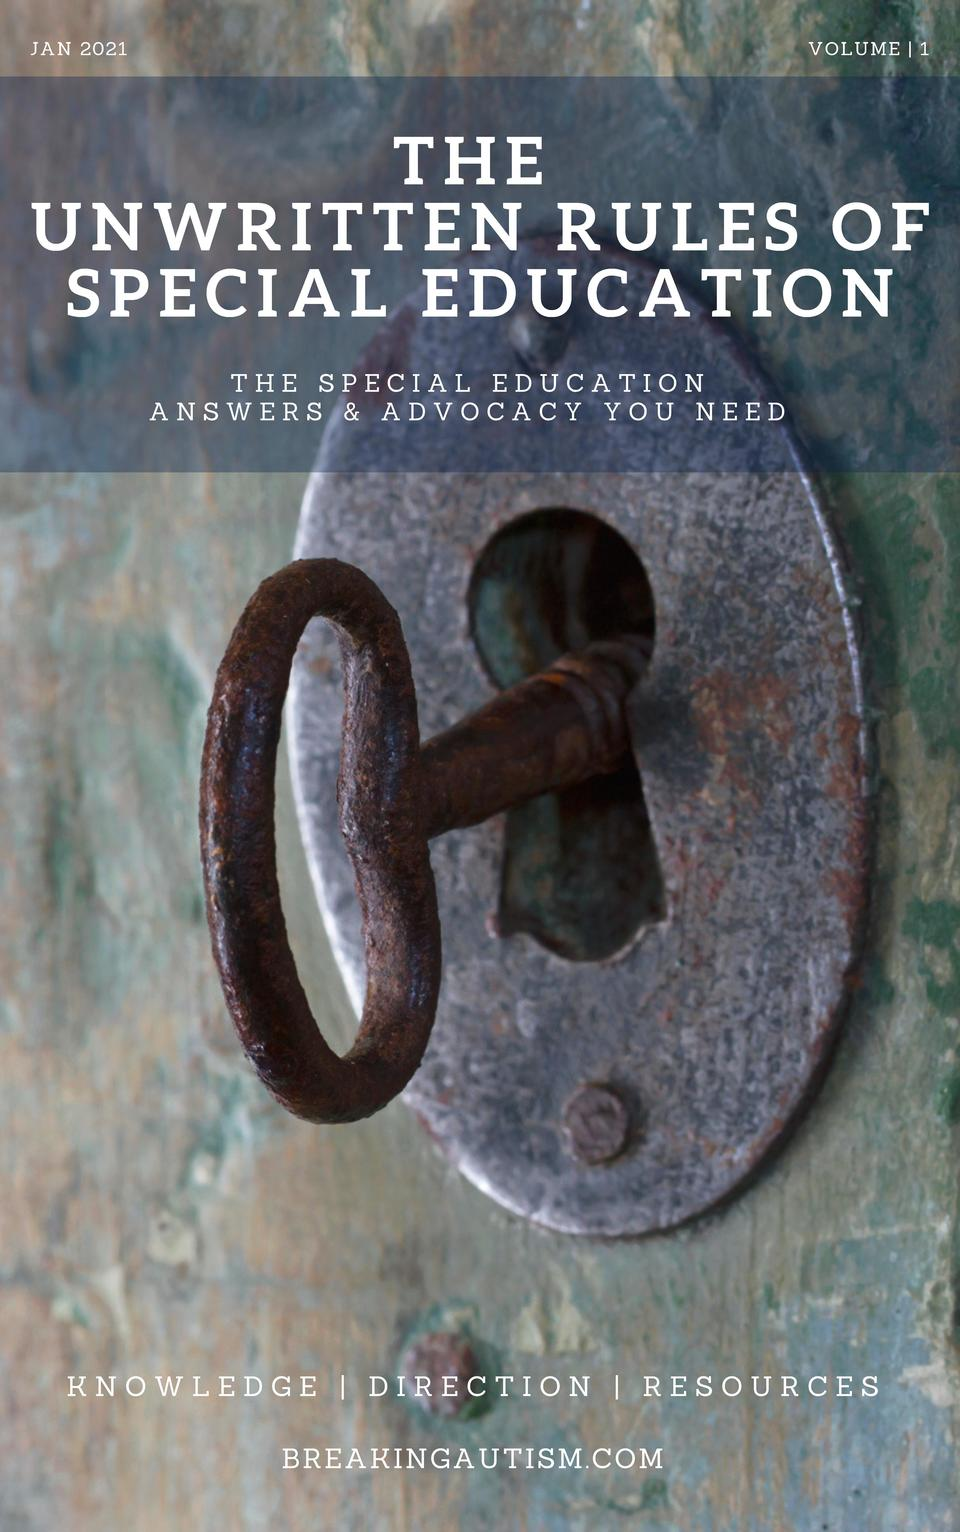 JAN 2021  VOLUME   1  THE UNWRITTEN RULES OF SPECIAL EDUCATION THE SPECIAL EDUCATION ANSWERS   ADVOCACY YOU NEED  KNOWLEDG...